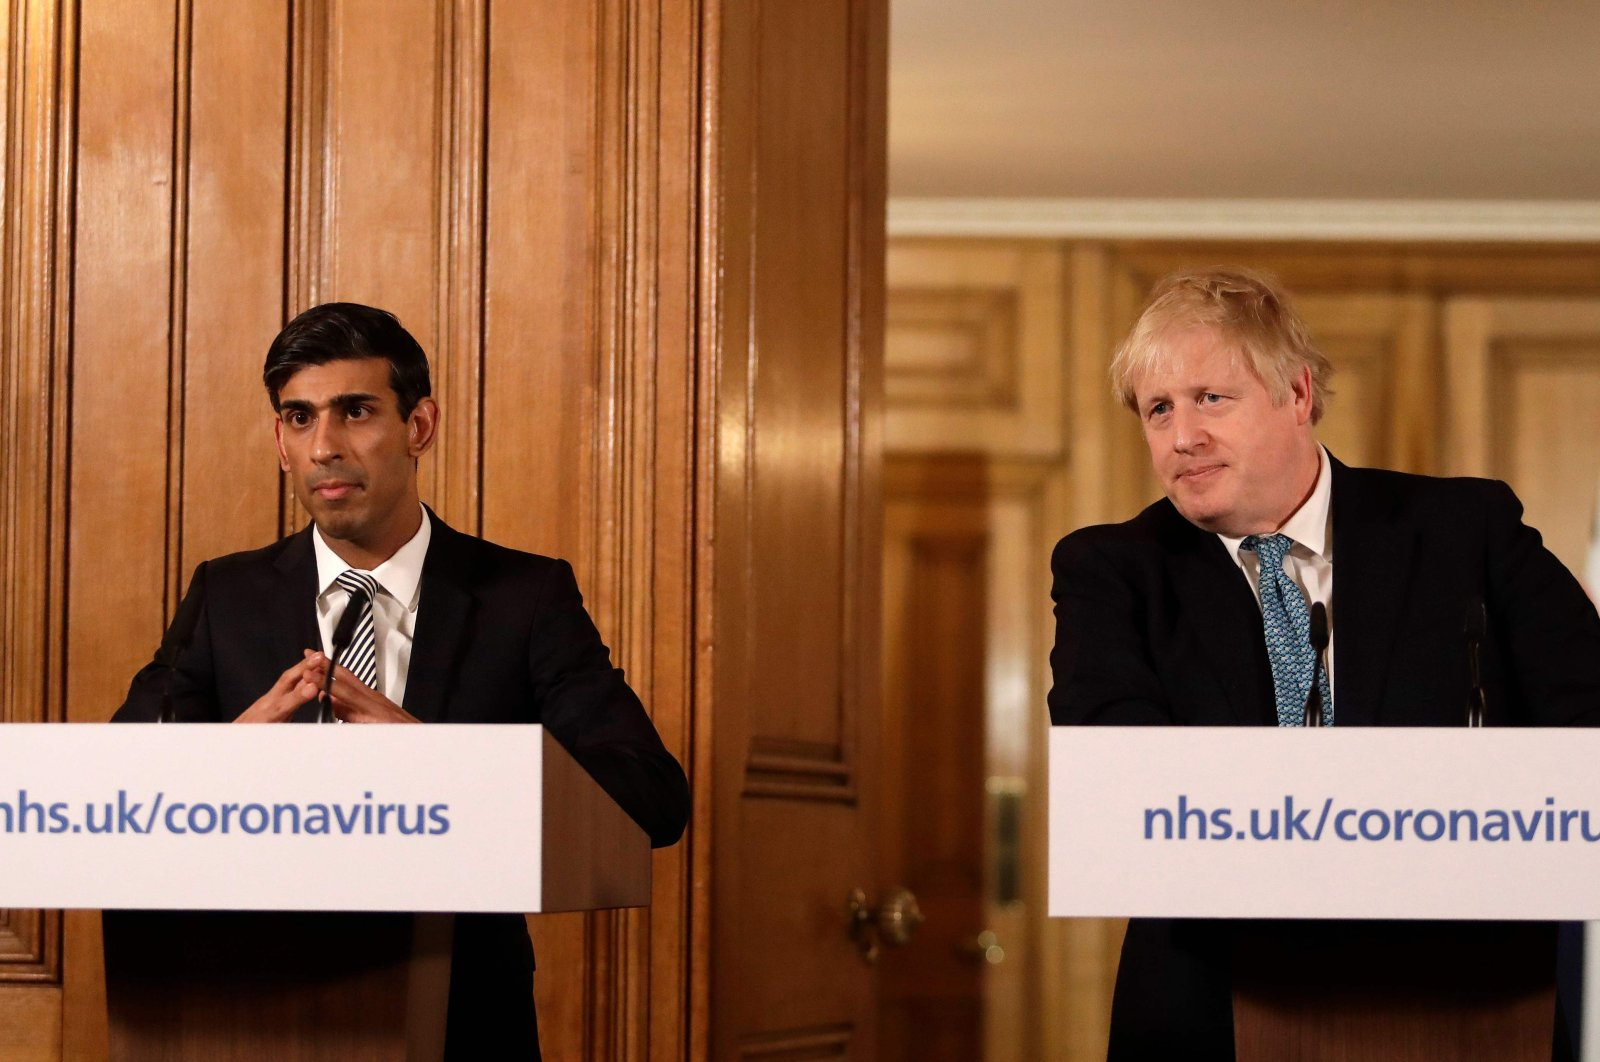 Britain's Chancellor of the Exchequer Rishi Sunak (L) and Britain's Prime Minister Boris Johnson (R) attend a news conference addressing the government's response to the novel coronavirus COVID-19 outbreak, inside 10 Downing Street in London on March 17, 2020. (AFP Photo)